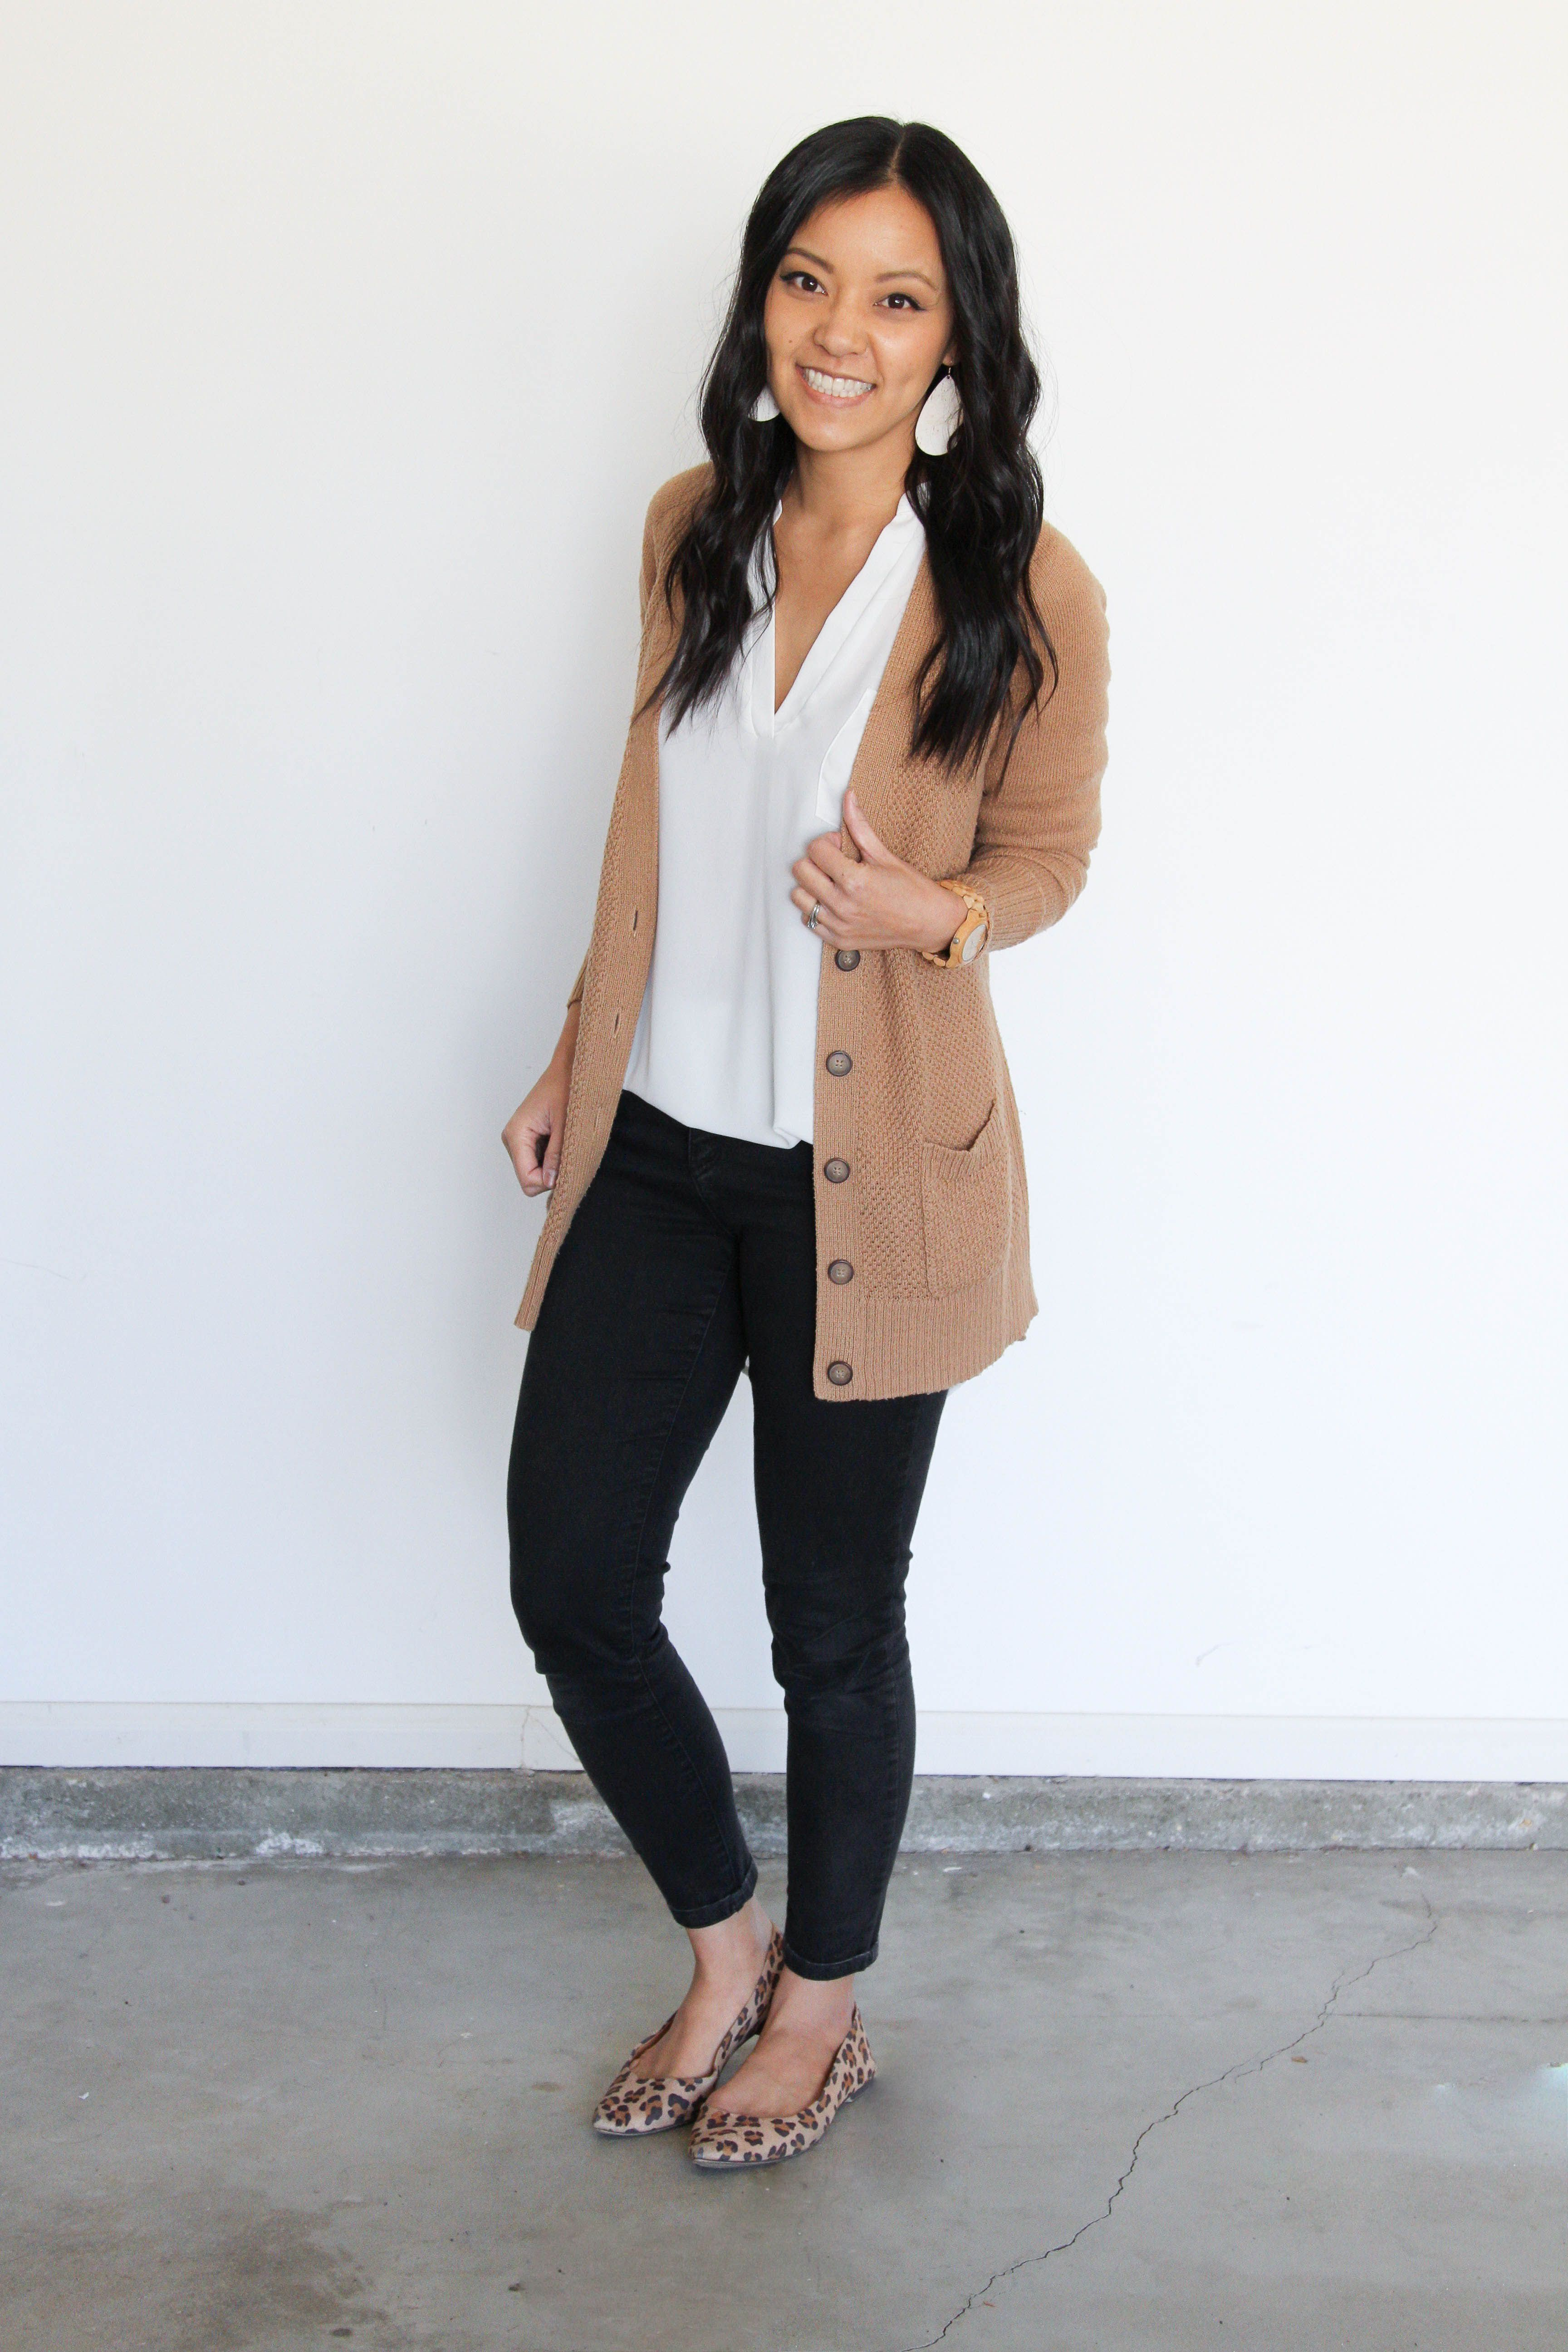 Plain To Polished Adding A Print To Make A Plain Outfit Look Good Summer Work Outfits Plain Outfits Work Outfits Women [ 5184 x 3456 Pixel ]